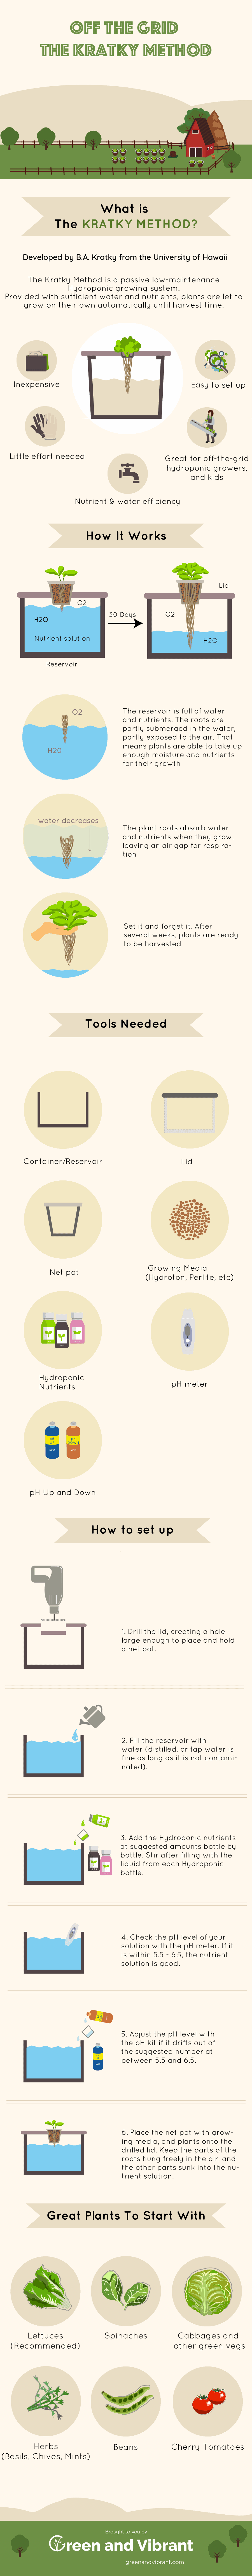 Kratky Method Infographic